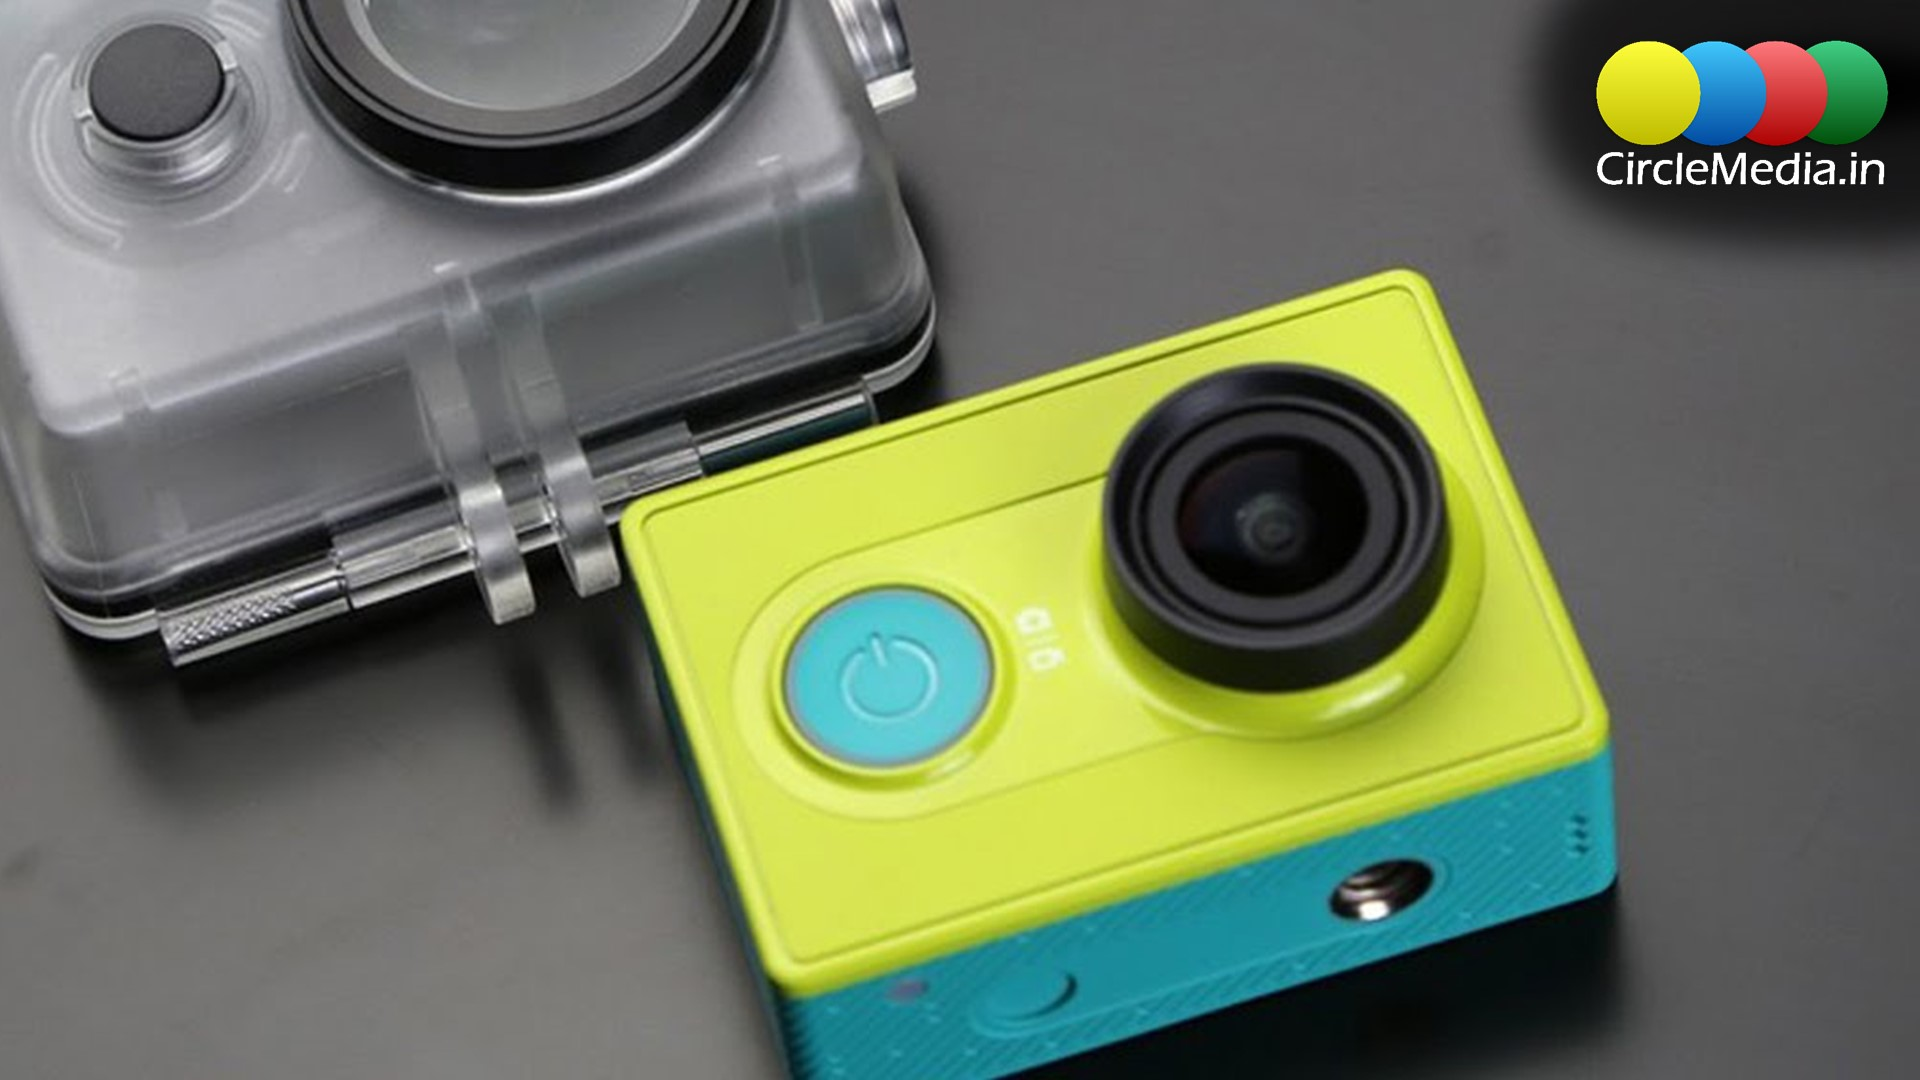 XiaoMi Yi Action Camera Review, Best Action Cameras, GoPro Alternative Camera